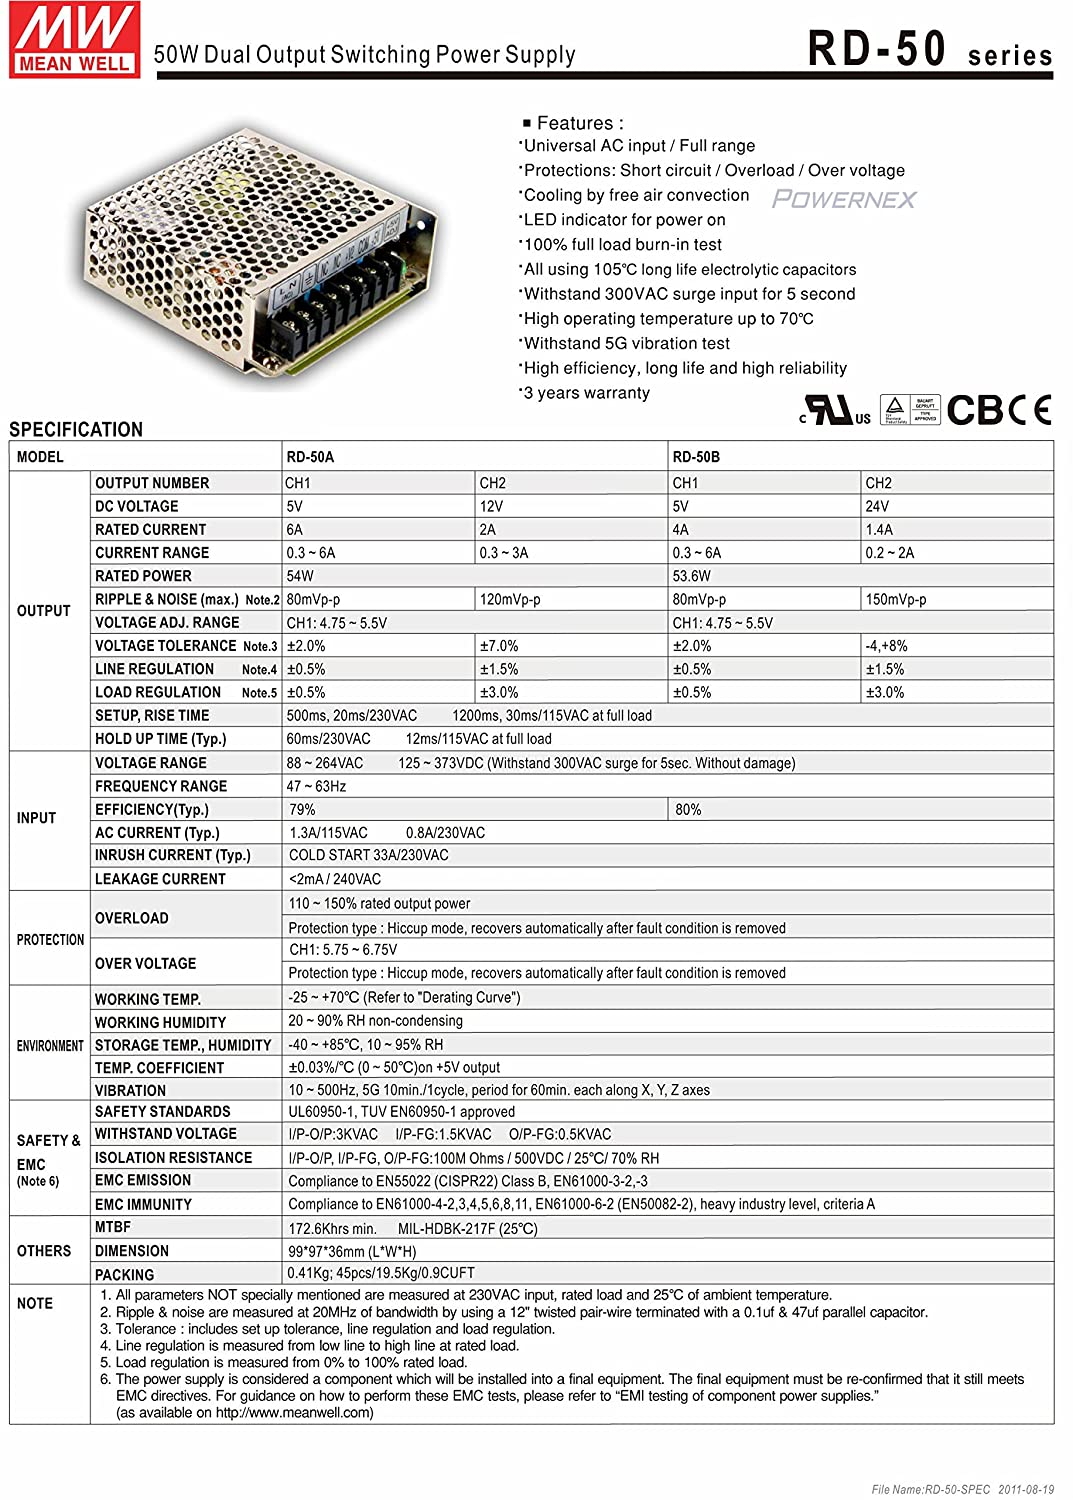 Mean Well Power Supply CH:1 5Volts CH:2 12 volts 54 watts | Universal AC input // Full range Dual Output Switching Power Supply RD-50 Series